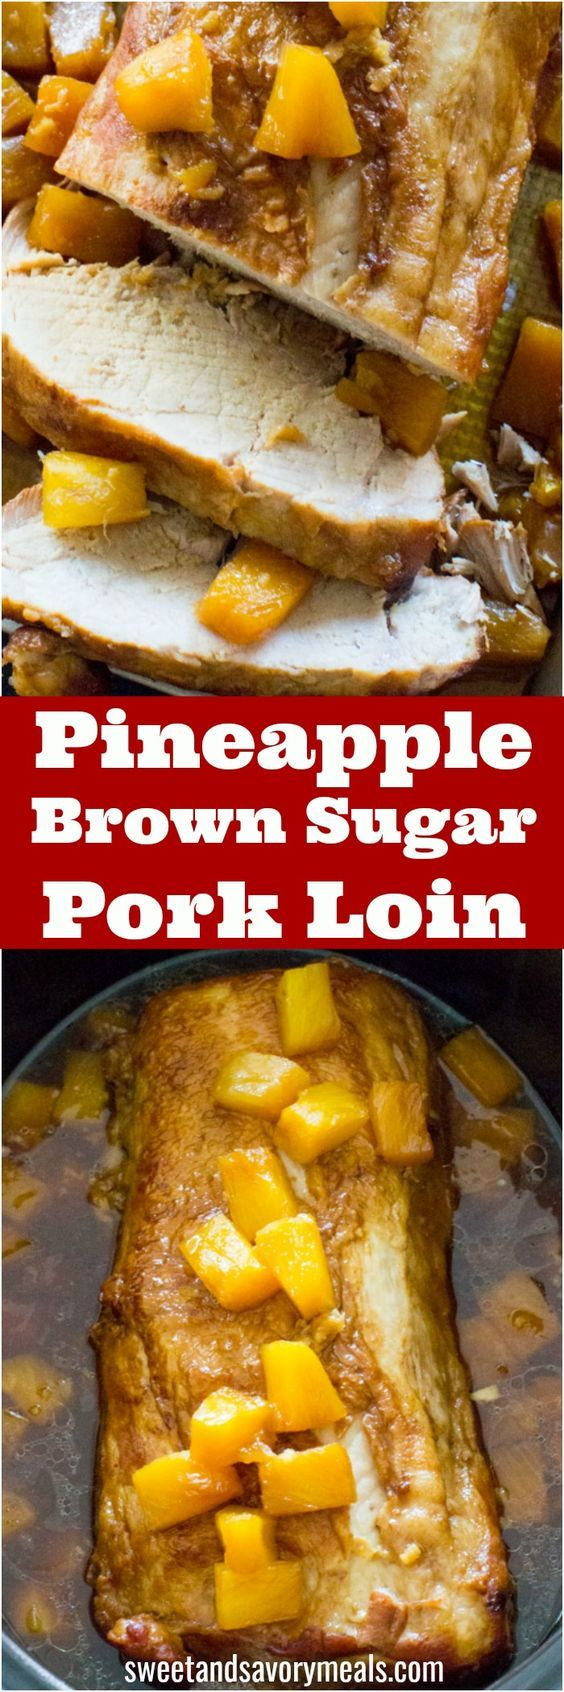 Slow Cooker Pineapple Pork made with just 5 ingredients. A great dinner with a fun tropical twist. #slowcooker #dinner #pork